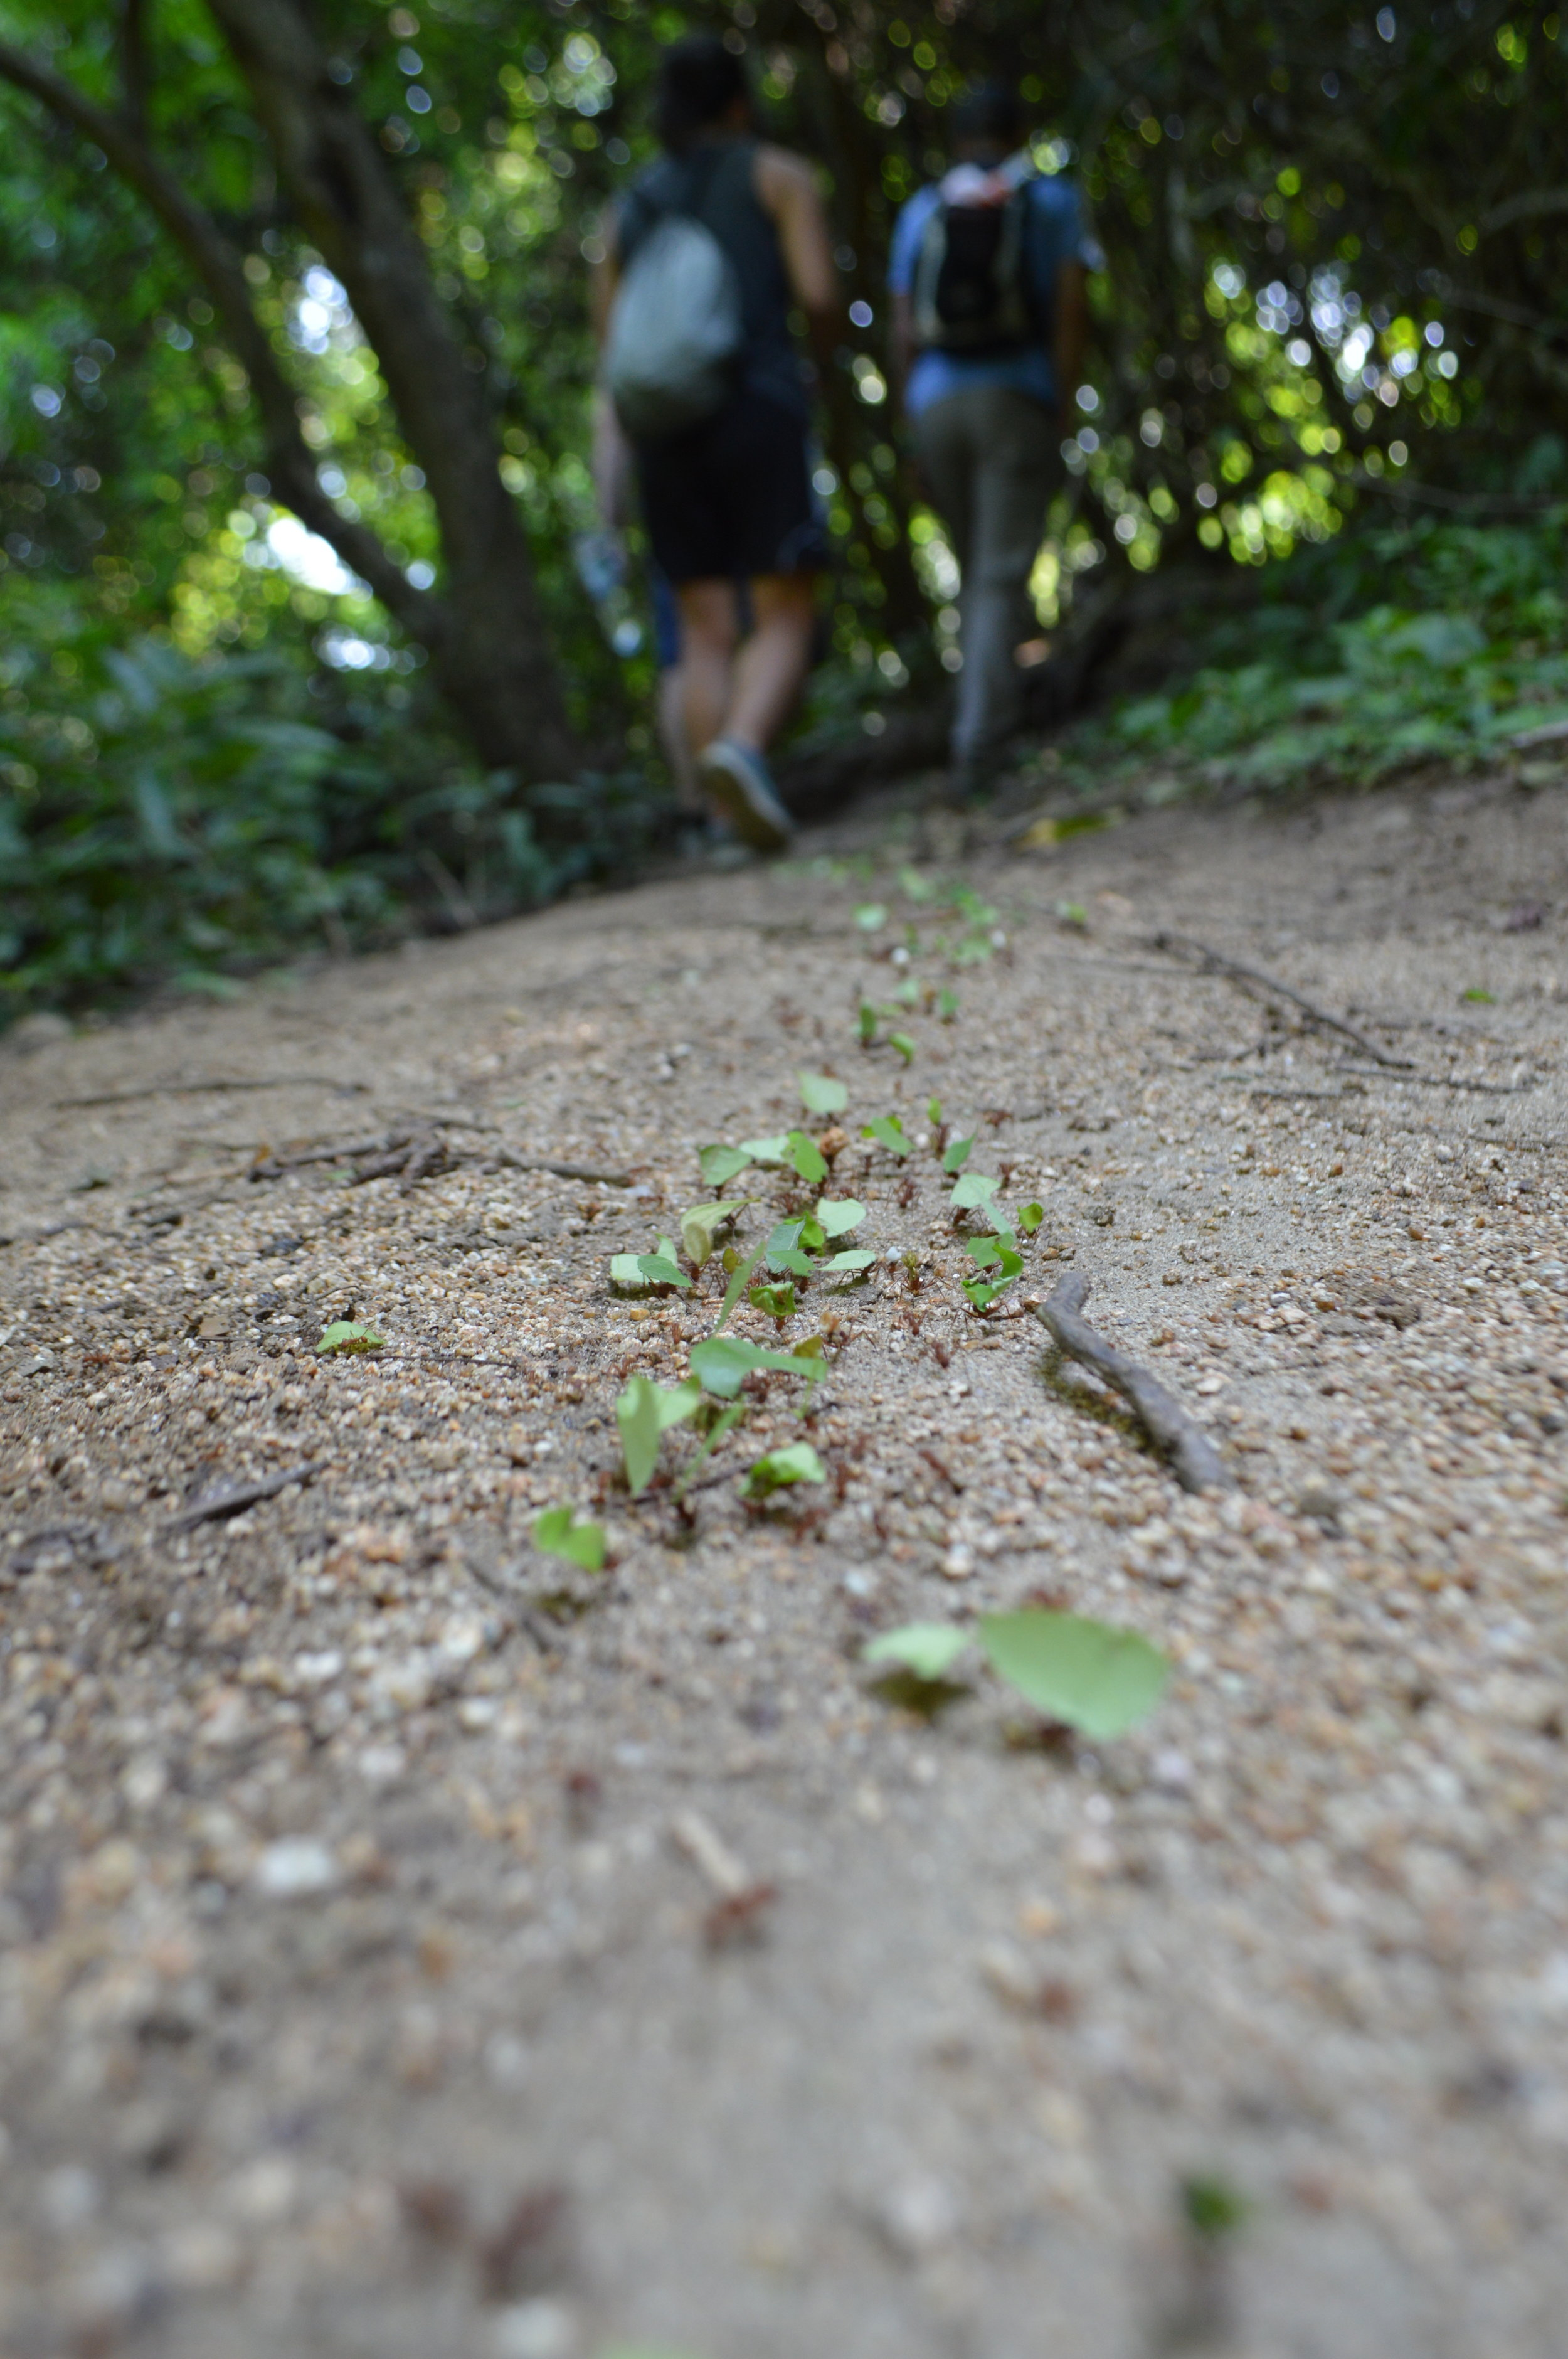 Follow the leaf cutter ants!